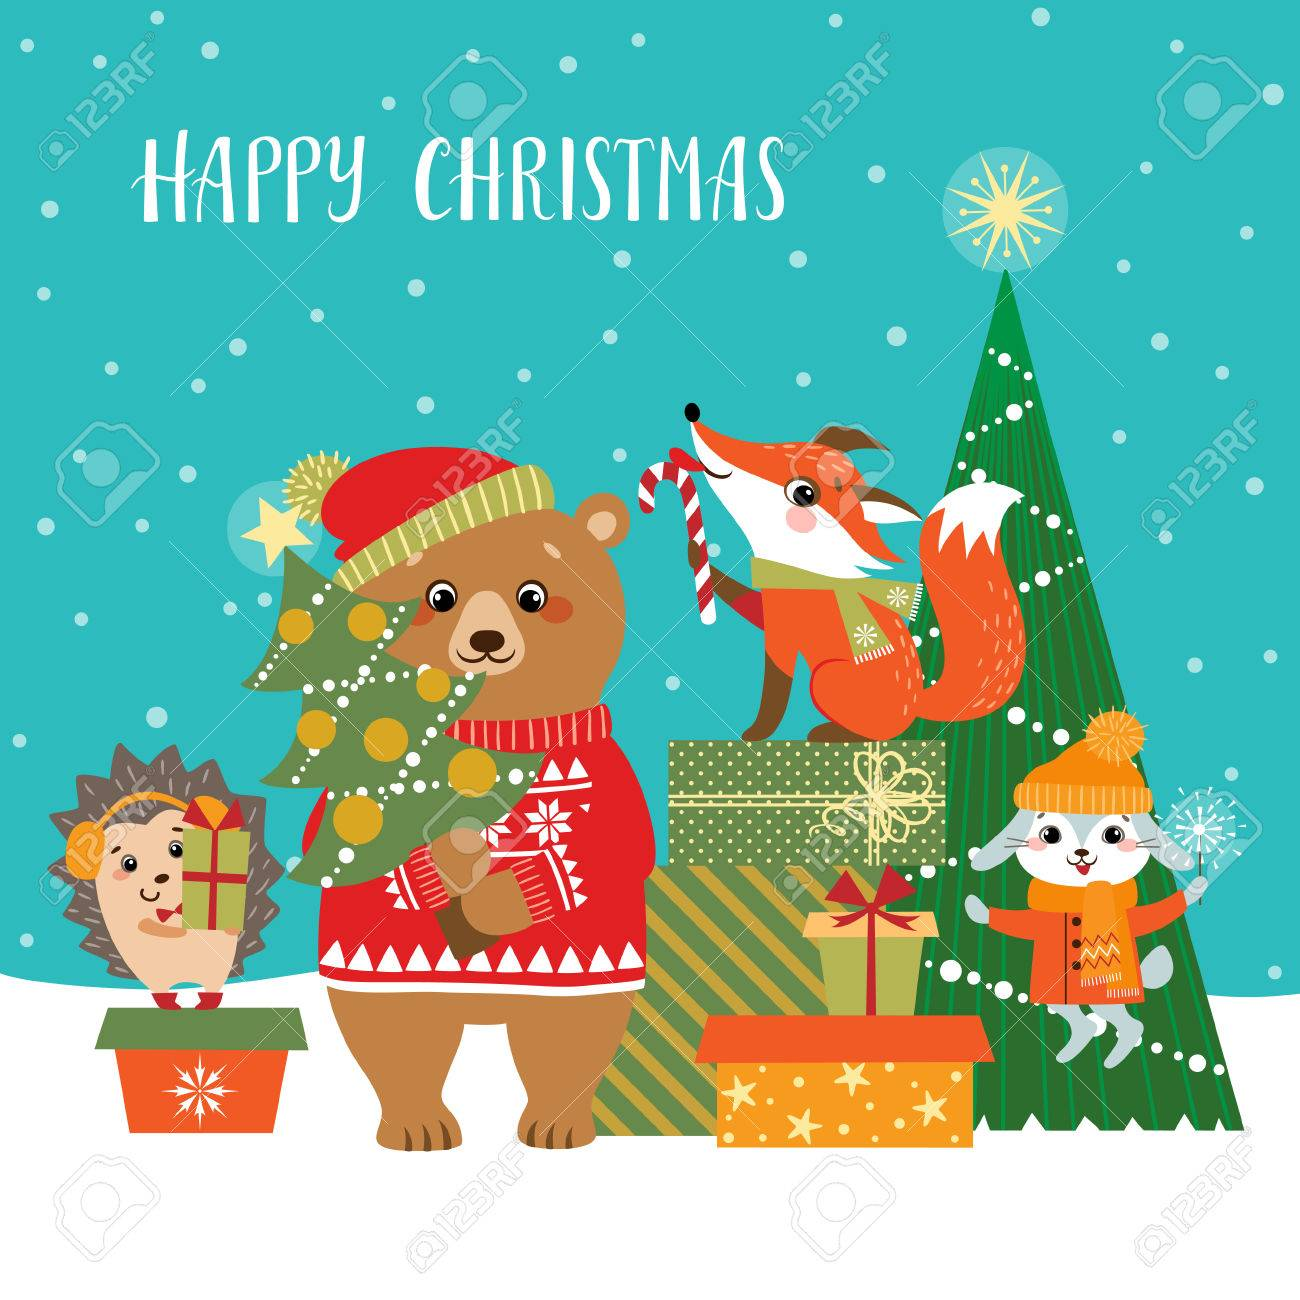 Christmas greeting card with cute forest animals, gifts and Christmas tree. - 66546090